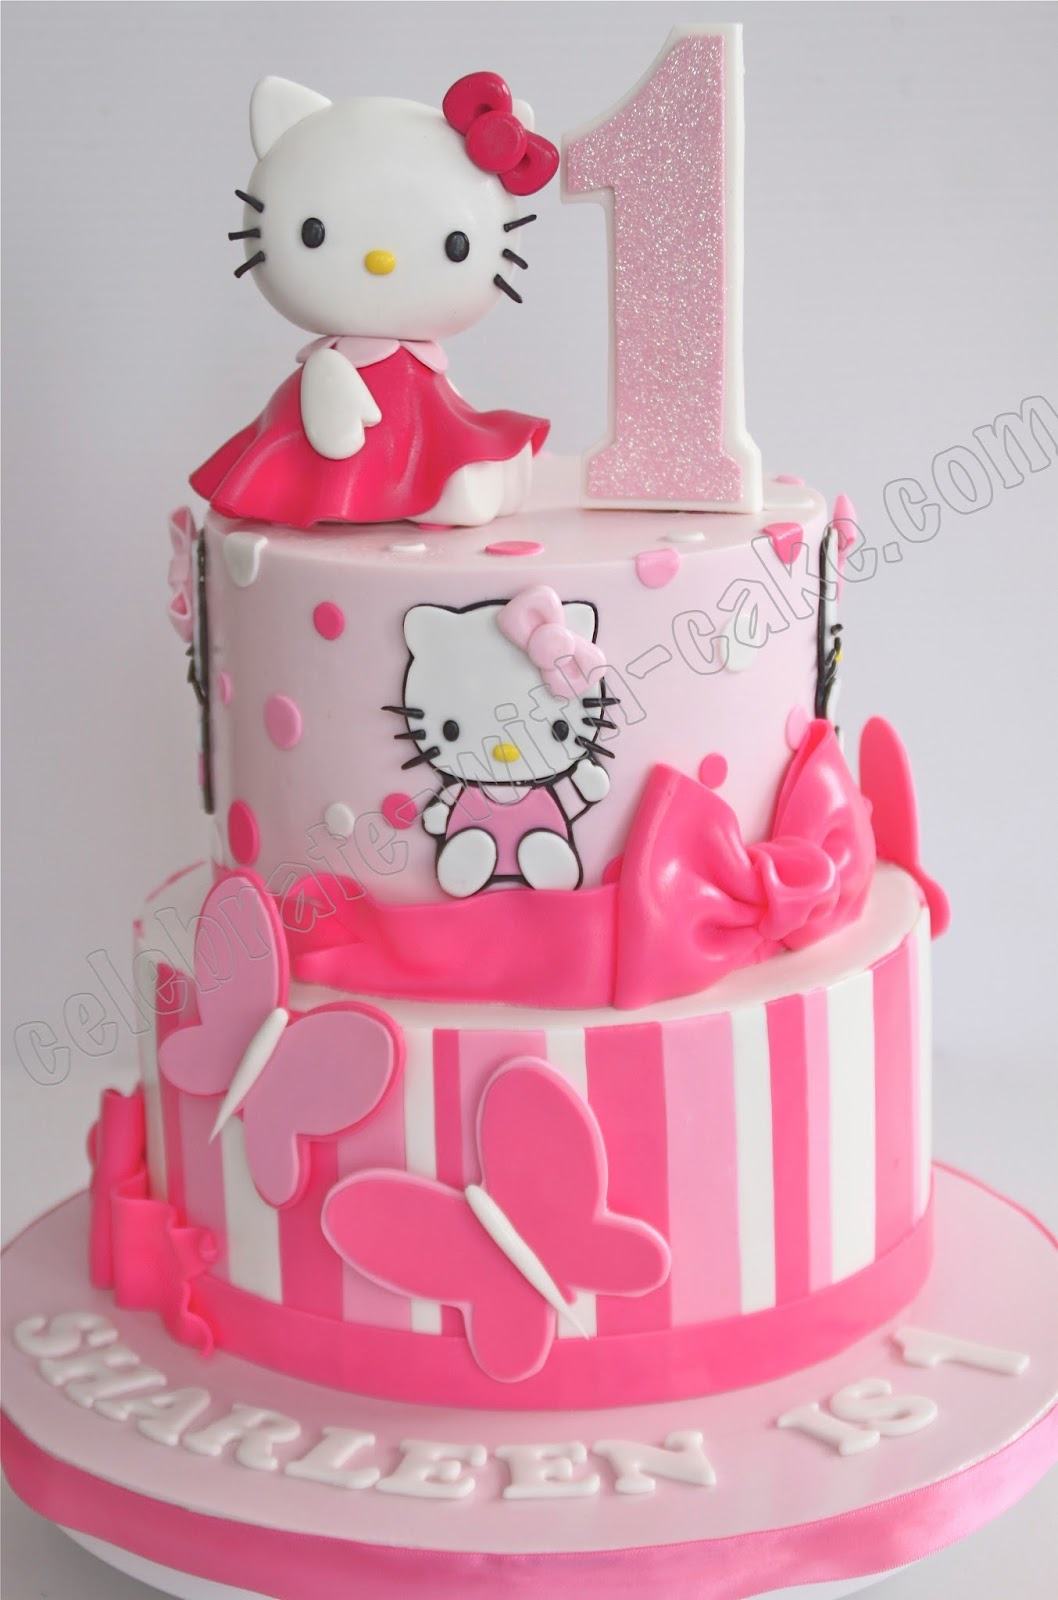 celebrate with cake 1st birthday hello kitty tier cake. Black Bedroom Furniture Sets. Home Design Ideas